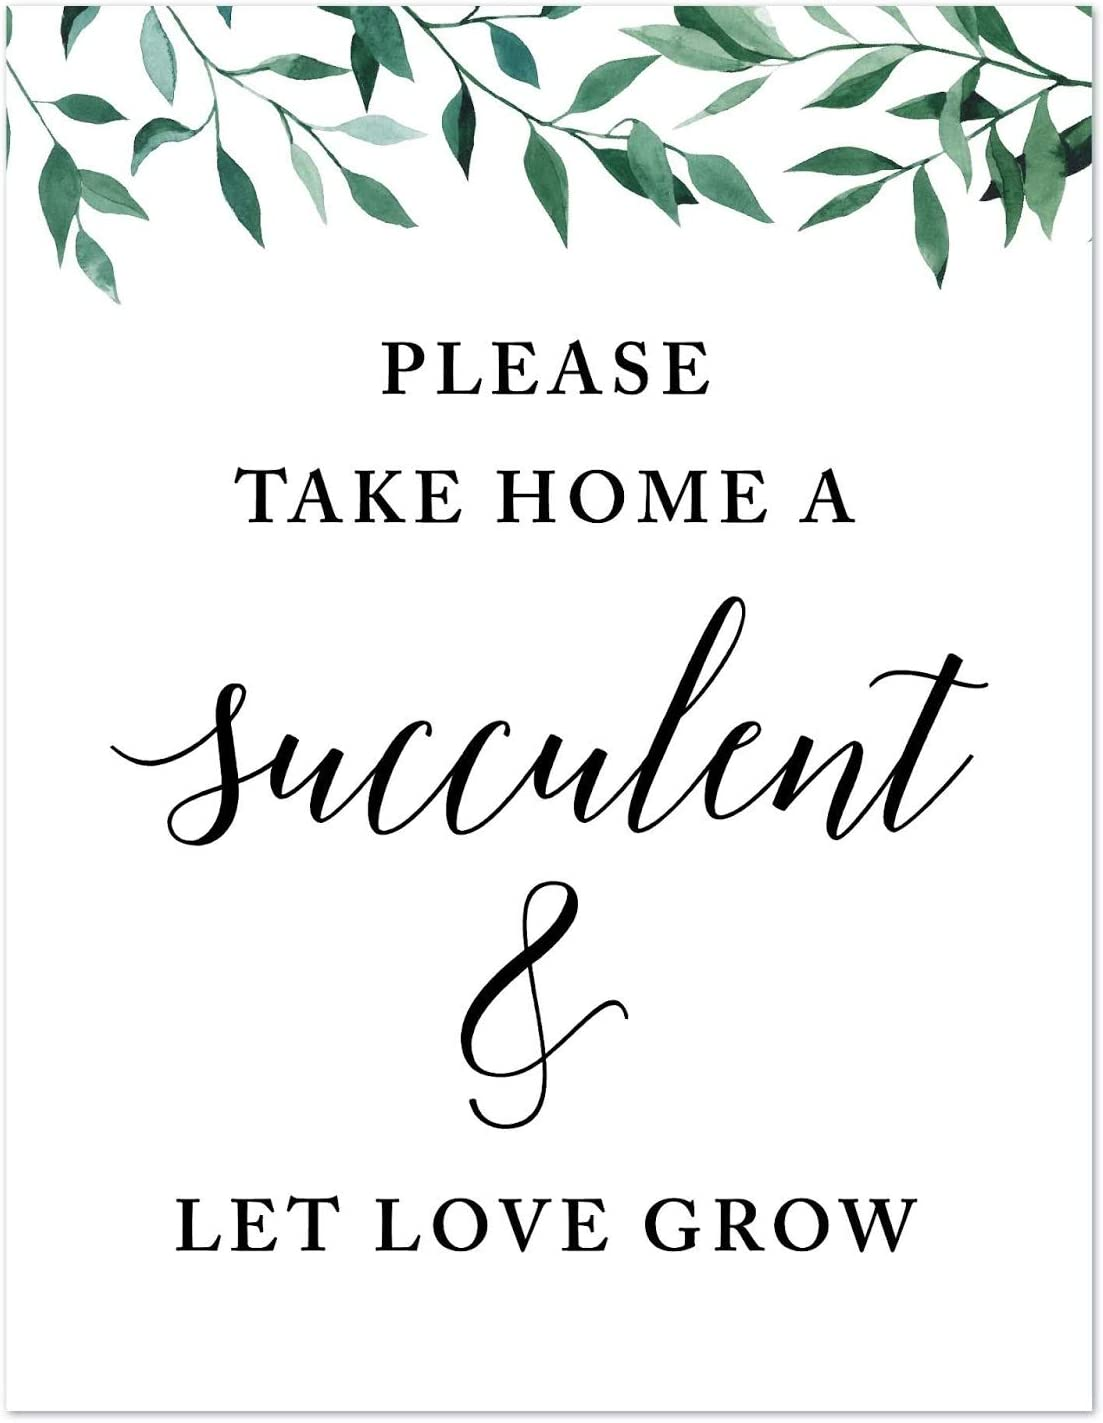 Andaz Press Wedding Party Signs, Natural Greenery Green Leaves, 8.5x11-inch, Please Take Home a Succulent and Let Love Grow, 1-Pack